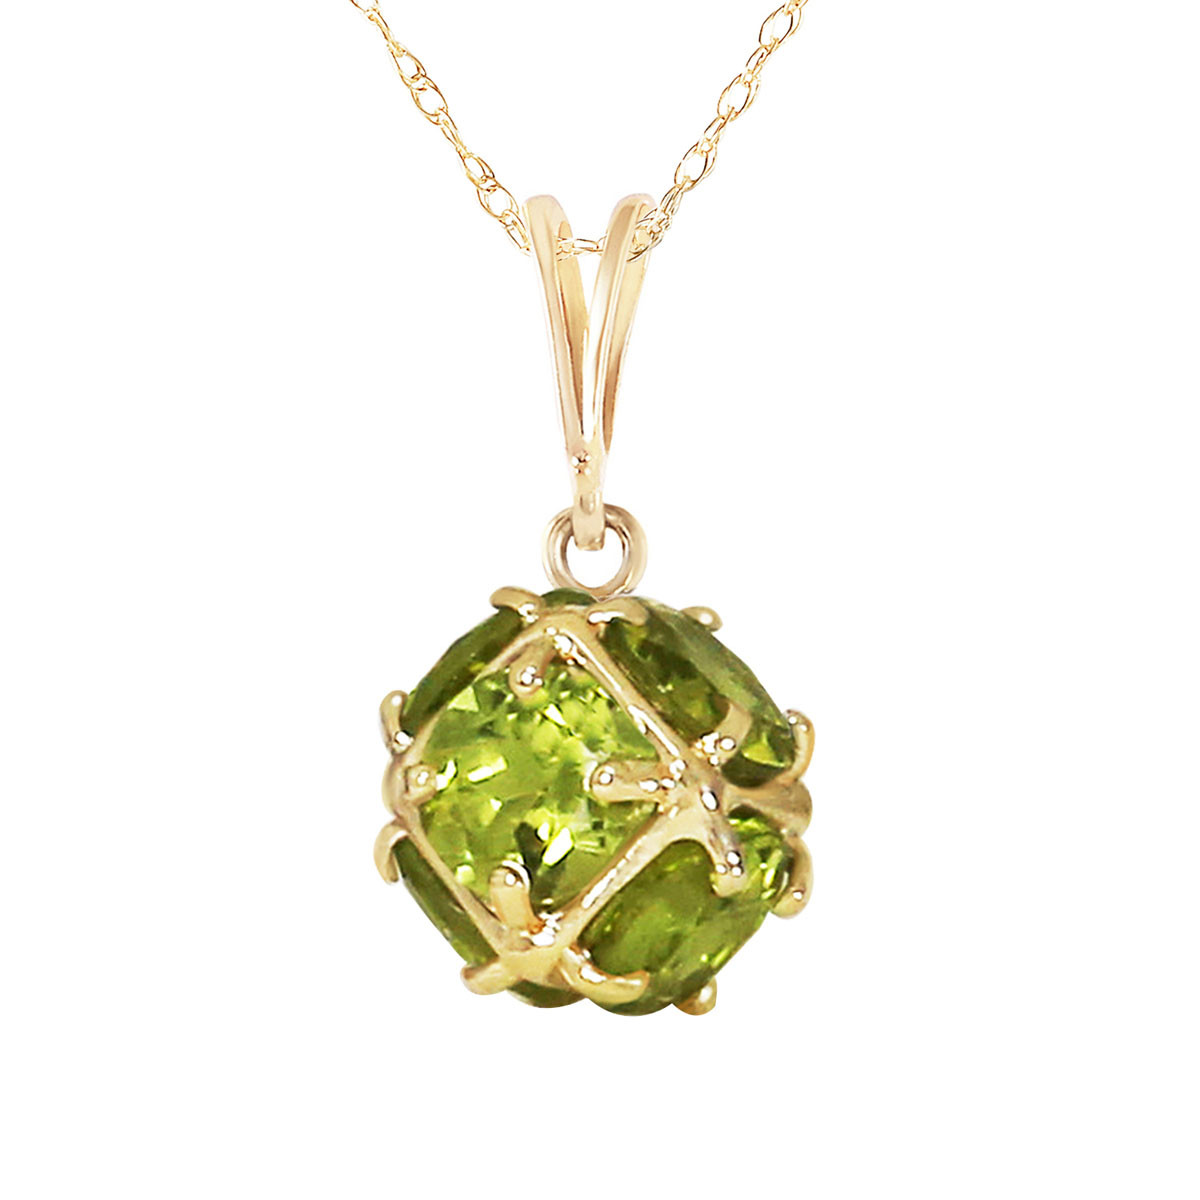 Round Cut Peridot Pendant Necklace 3.3 ctw in 9ct Gold - 5691Y | QP  Jewellers